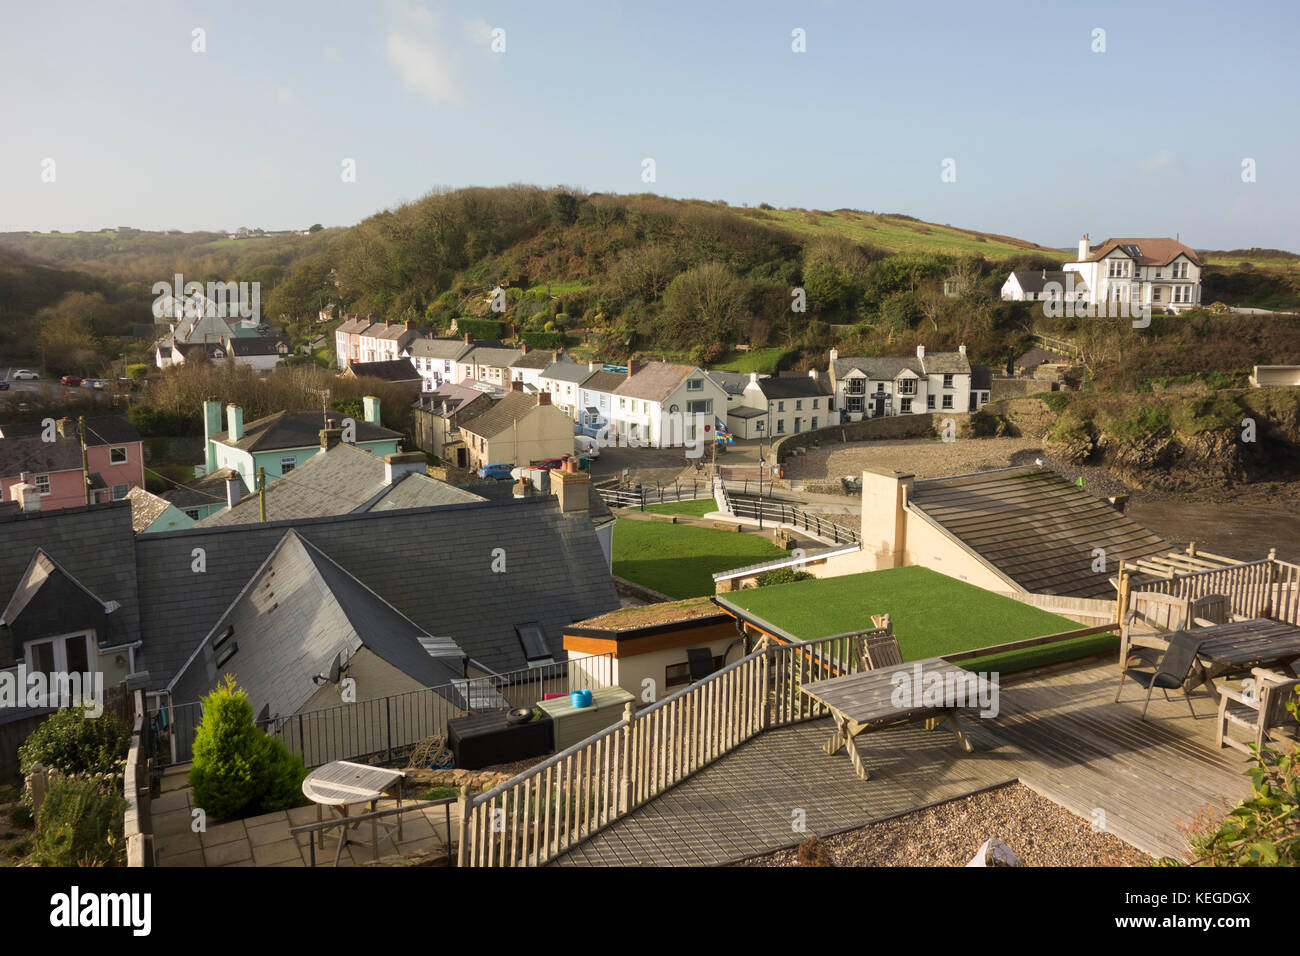 The small coastal village of Little Haven, Pembroke Wales - Stock Image